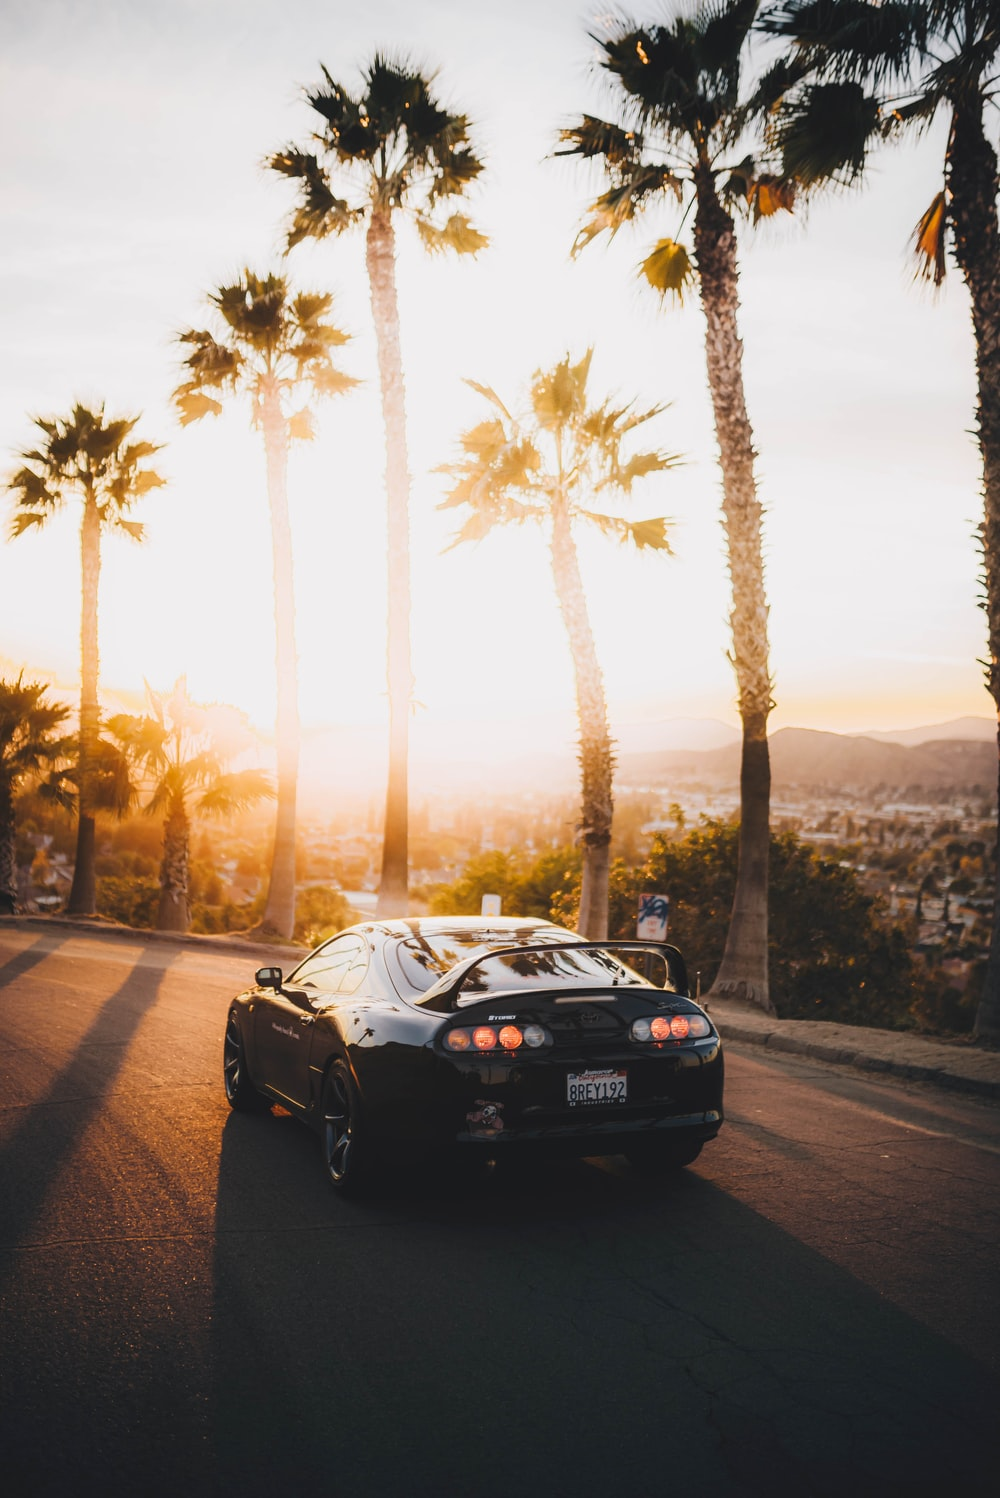 black porsche 911 on road during sunset